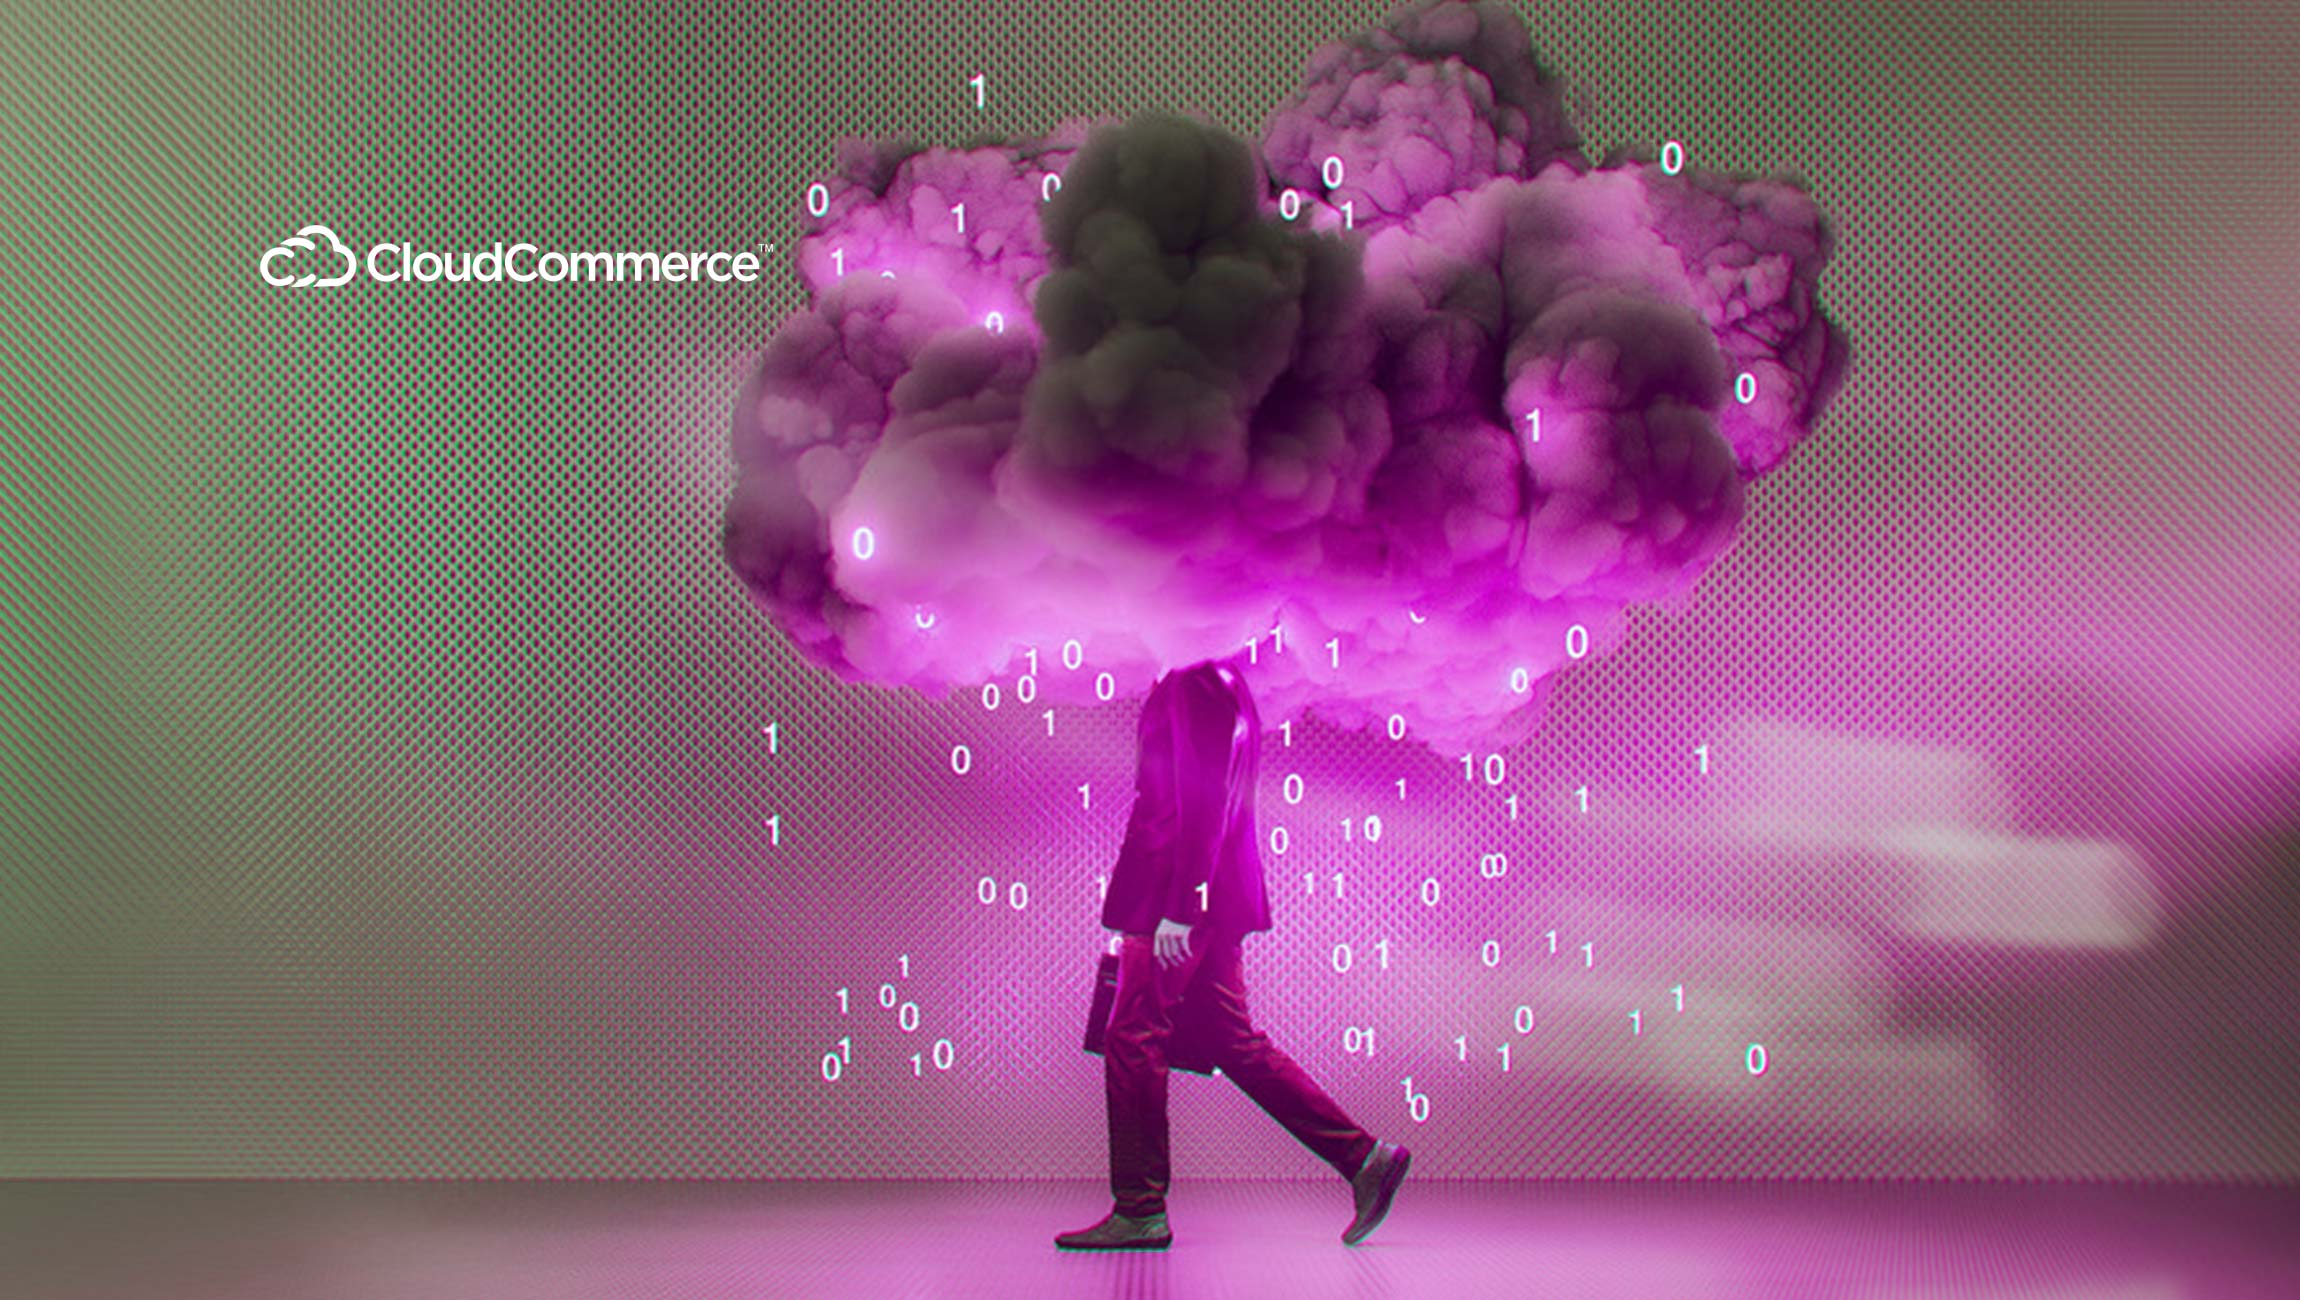 martechseries.com - Globe Newswire - CloudCommerce Goes Live with Artificial Intelligence (AI) Advertising Venture